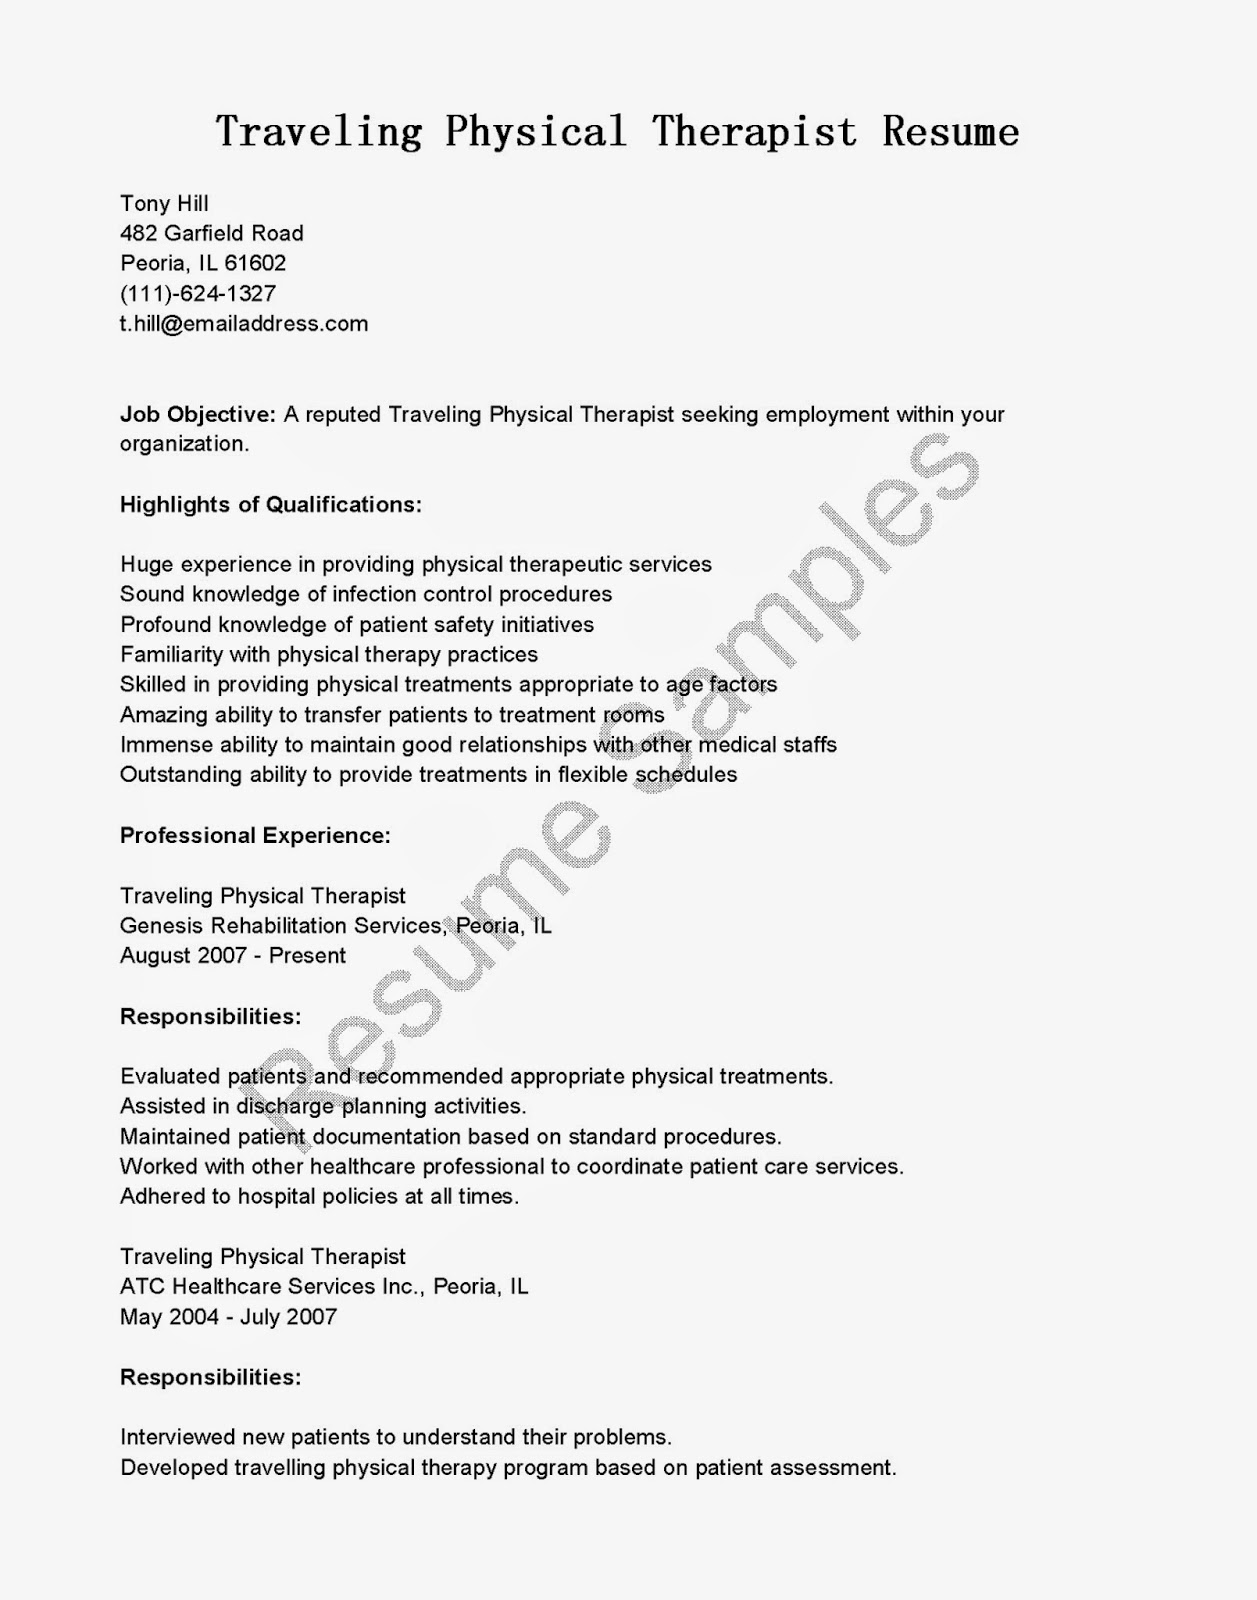 Respiratory Therapist Cover Letter Examples Within Occupational Respiratory  Therapist Cover Letter Examples Within Occupational Free Sample